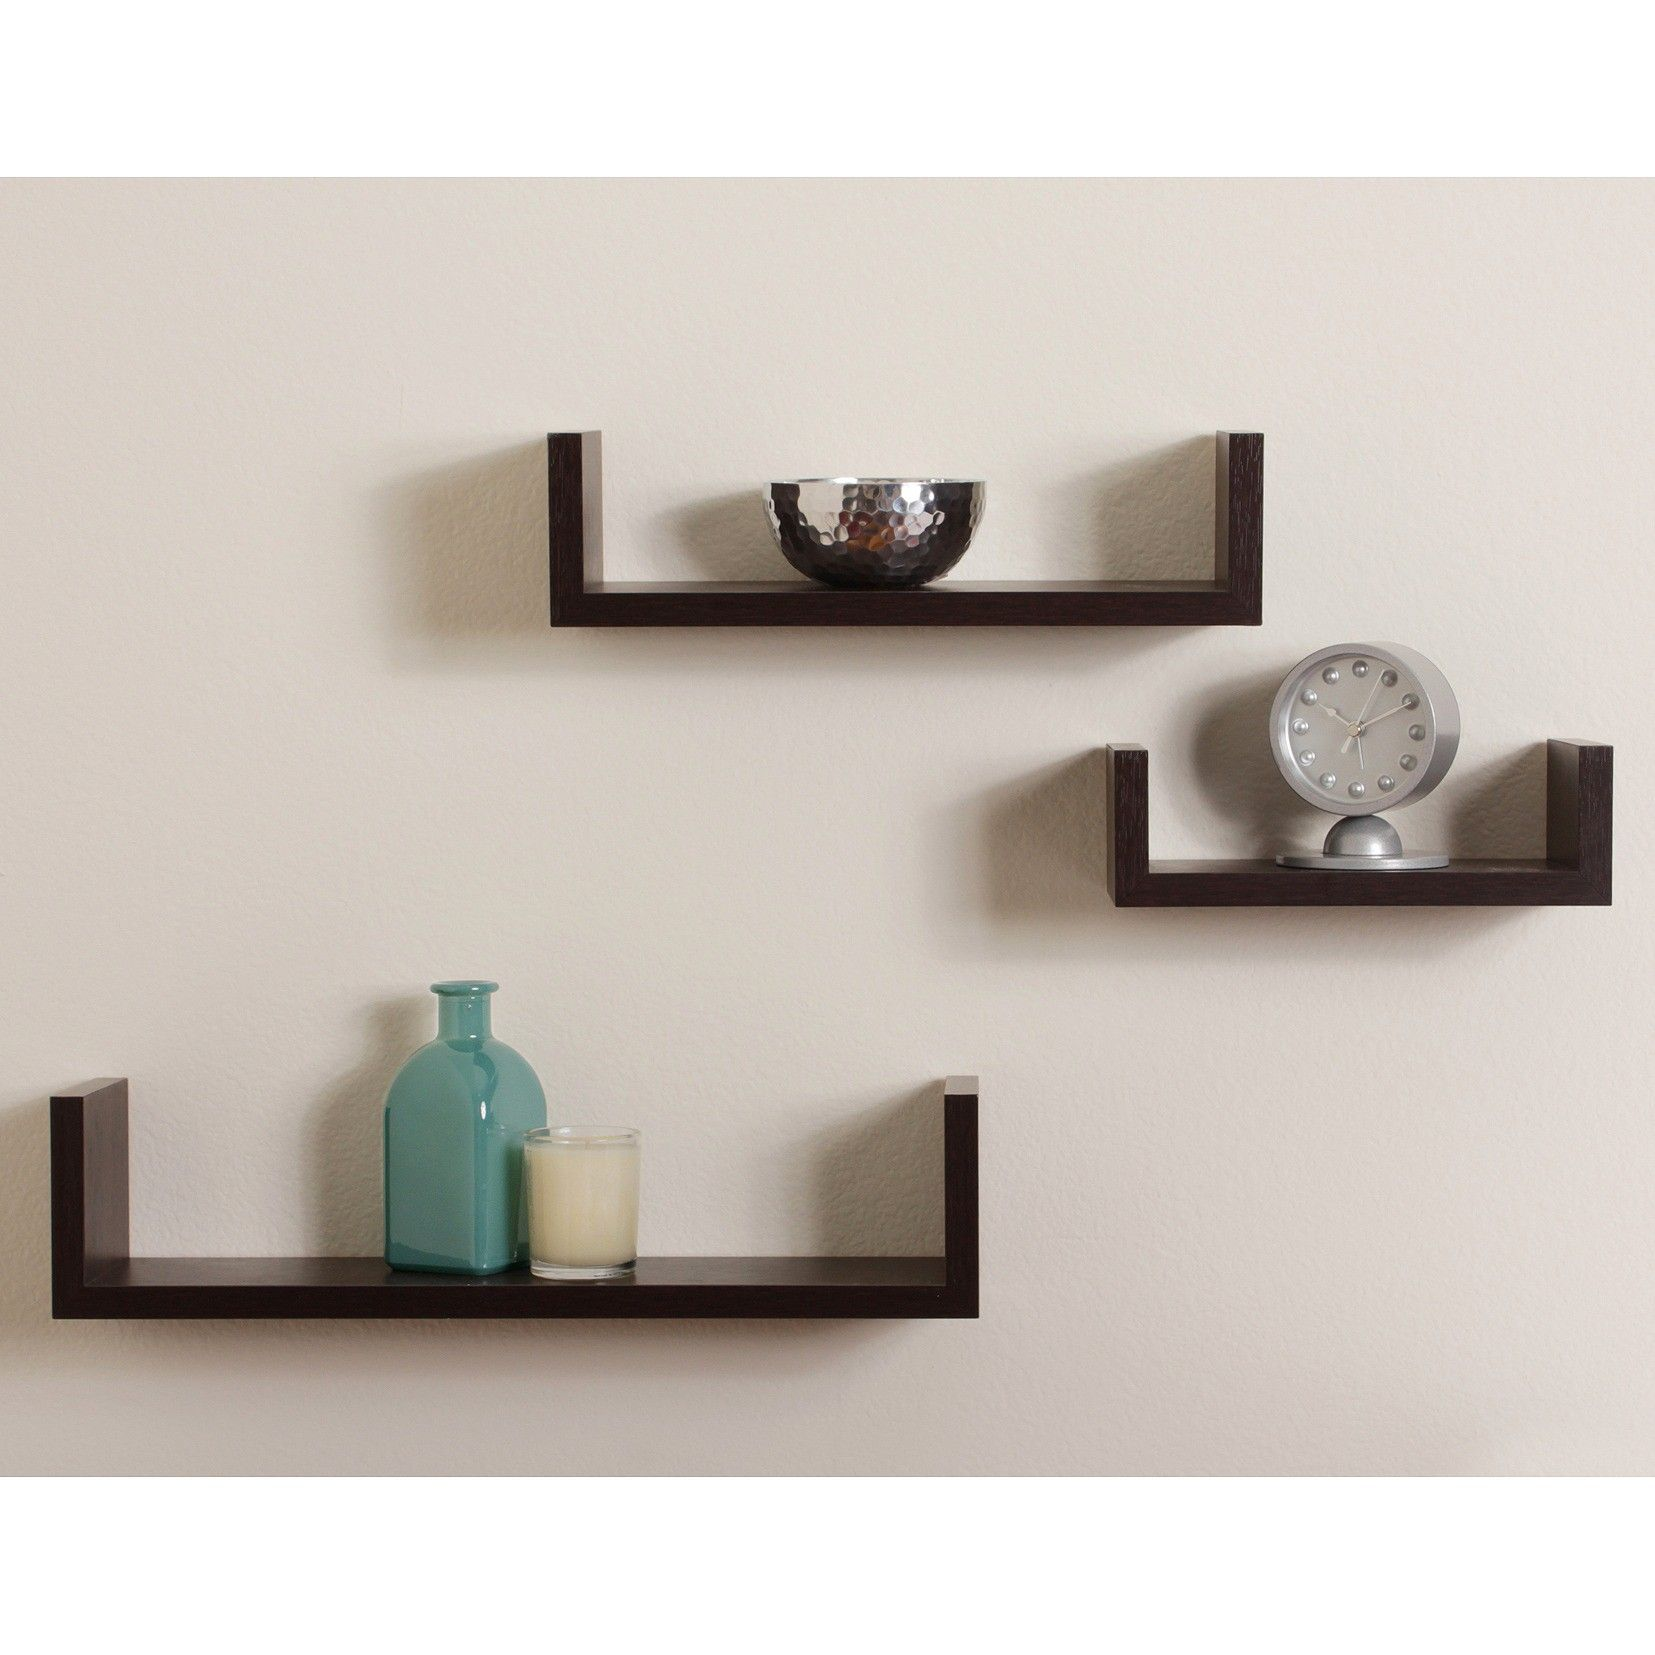 Nesting shelves 3 pack target our new apartment pinterest nesting shelves 3 pack target amipublicfo Choice Image